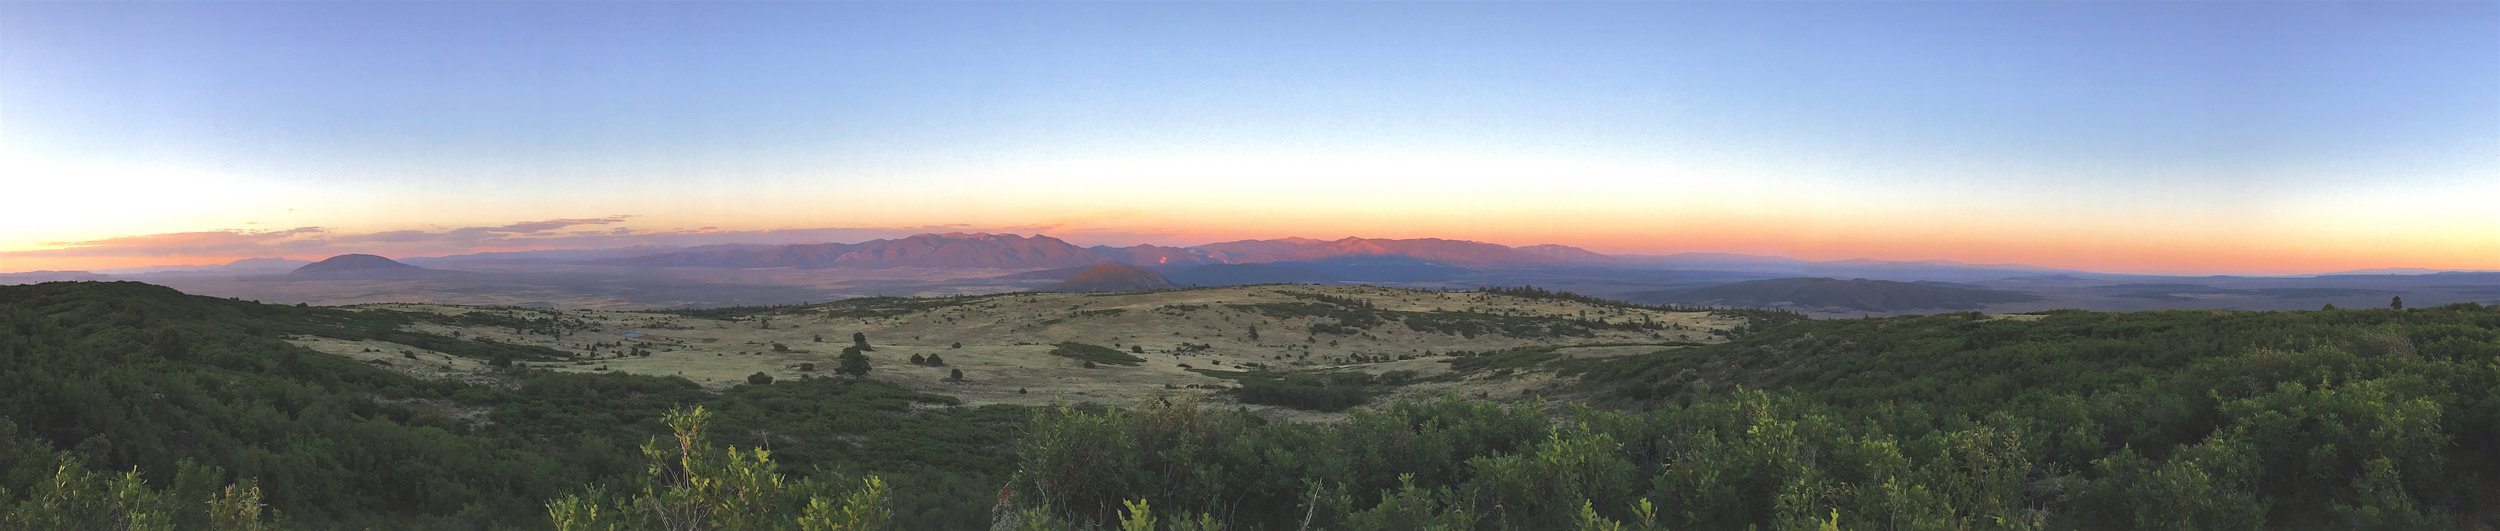 Sunset+Landscape+Panorama+-+Pot+Mtn.jpg